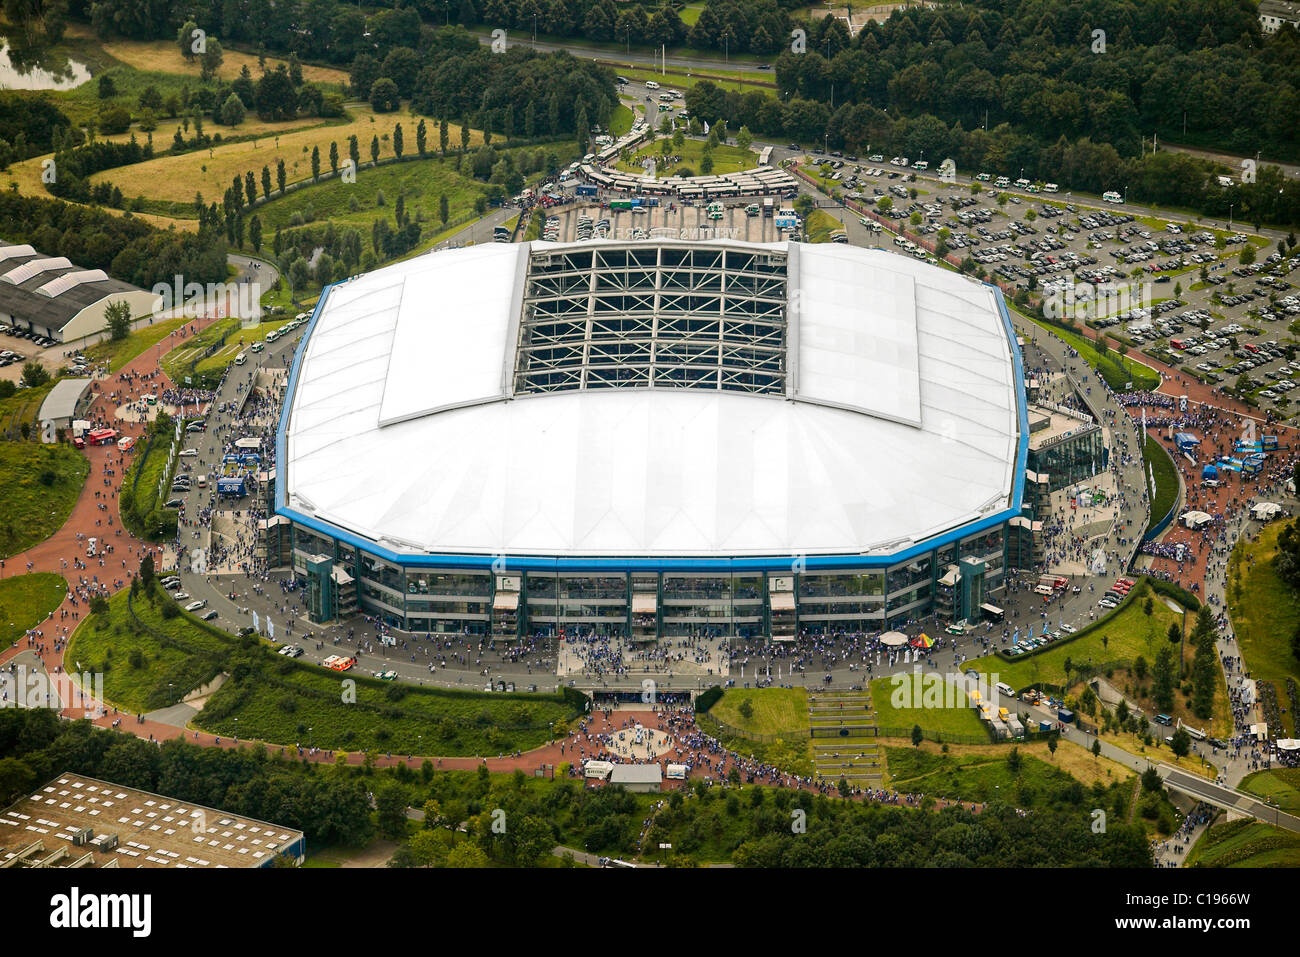 Aerial photo, Arena Auf Schalke, Schalke arena, Veltins Arena Stock Photo: 35237857 - Alamy